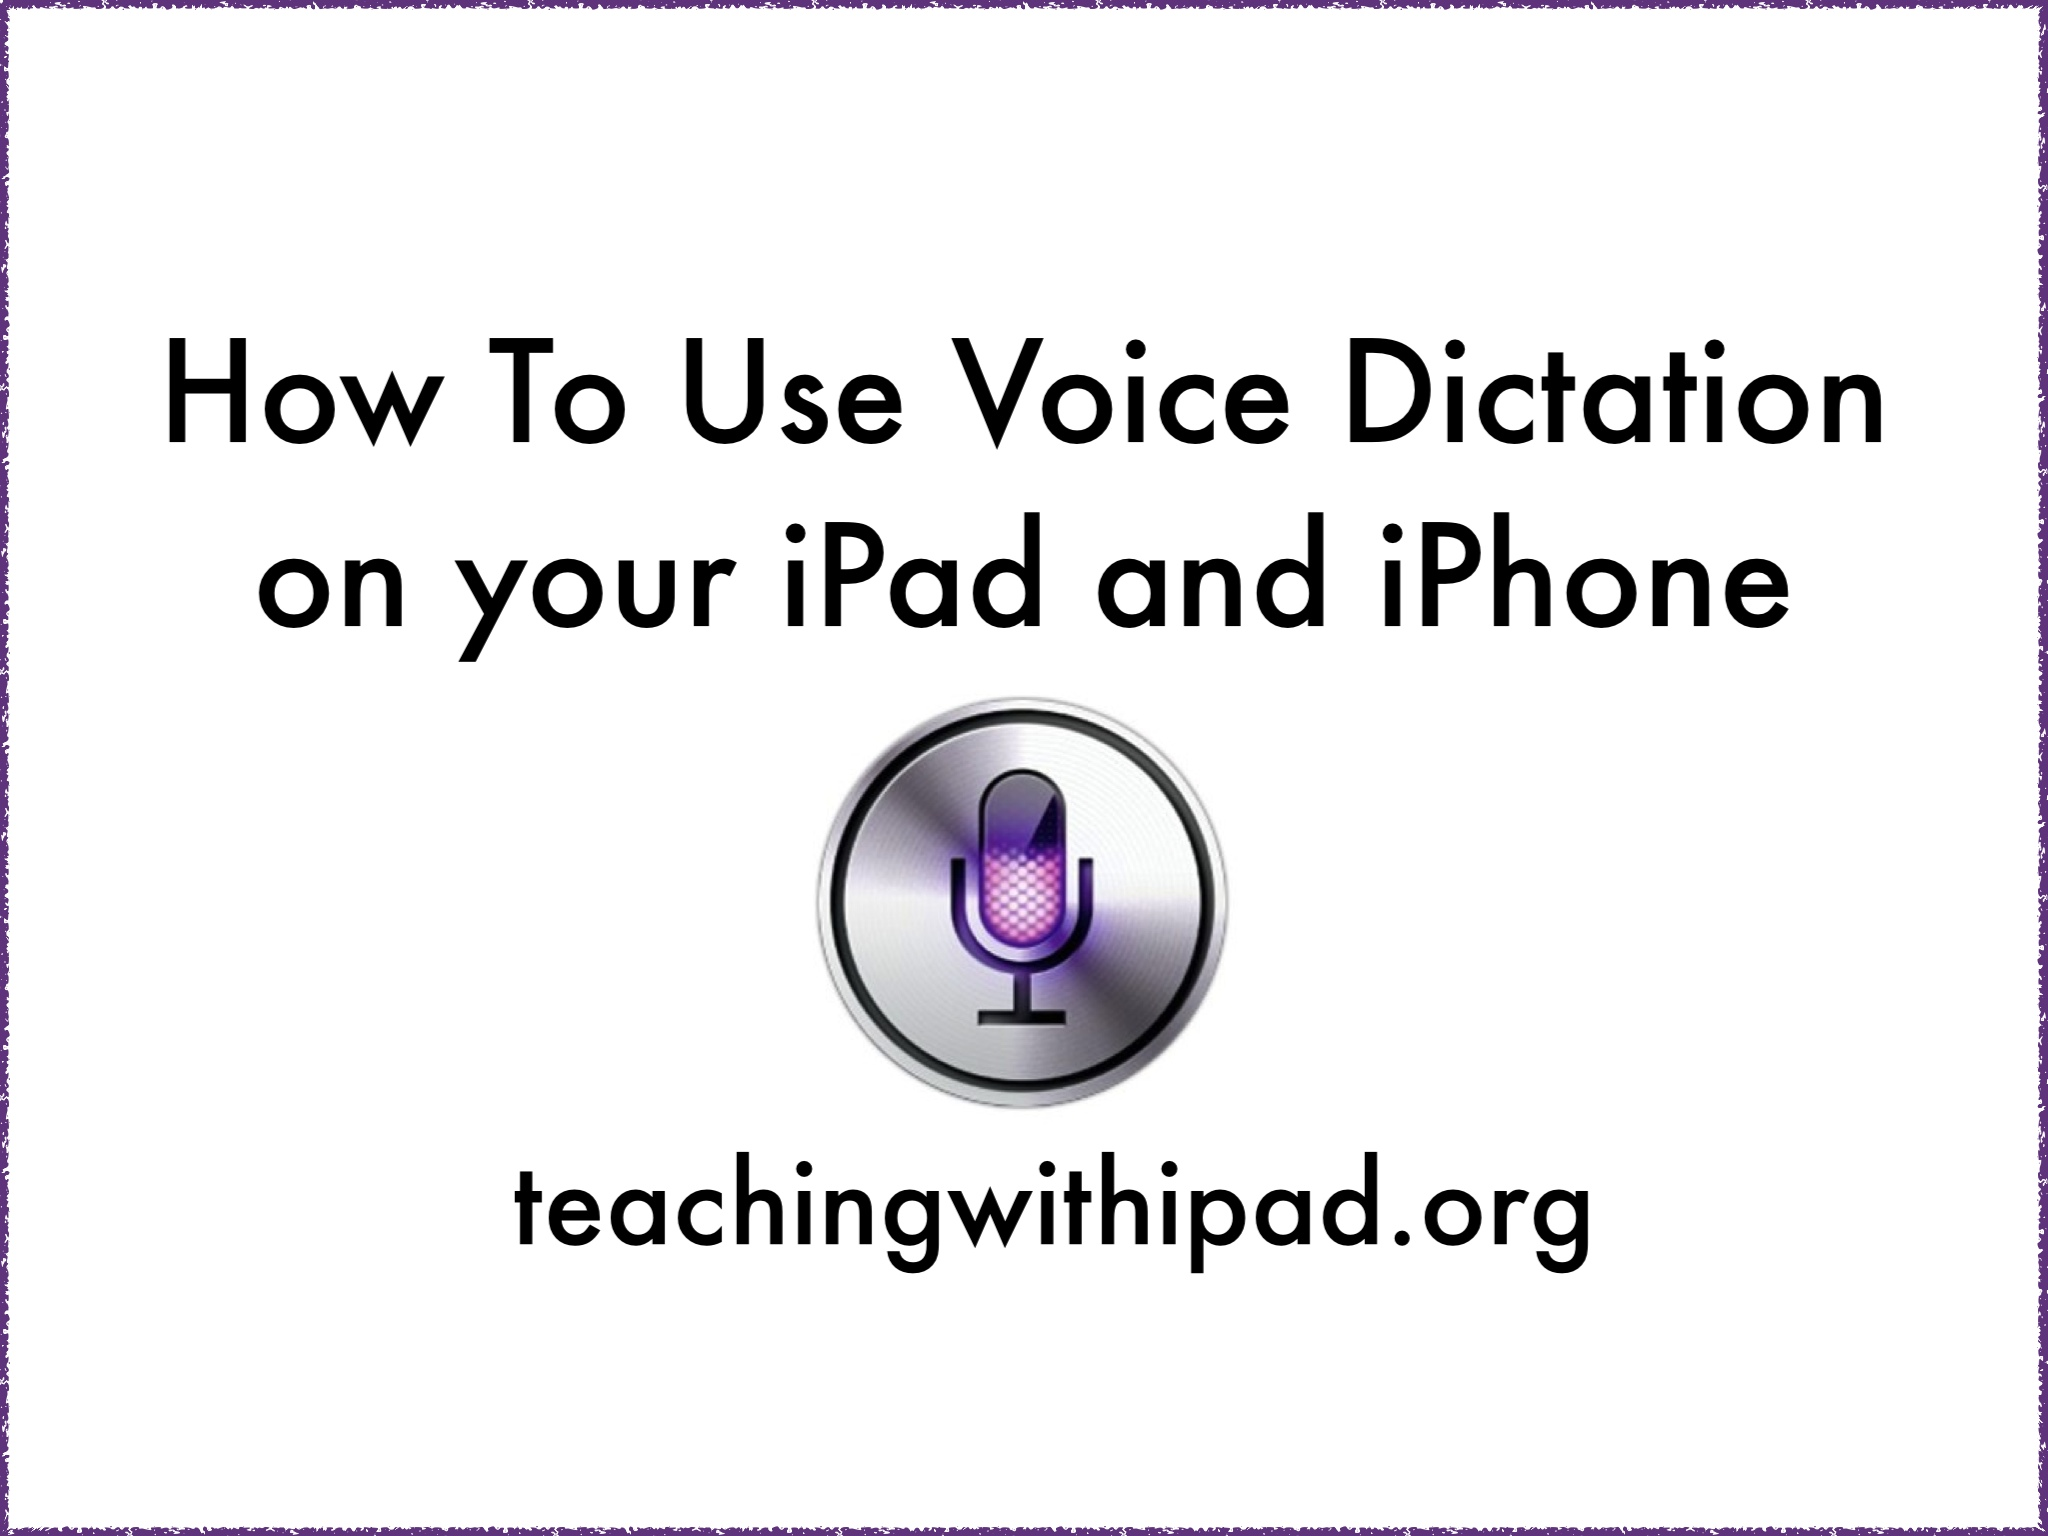 How To Use Voice Dictation On Your Ipad And Iphone Teachingwithipad